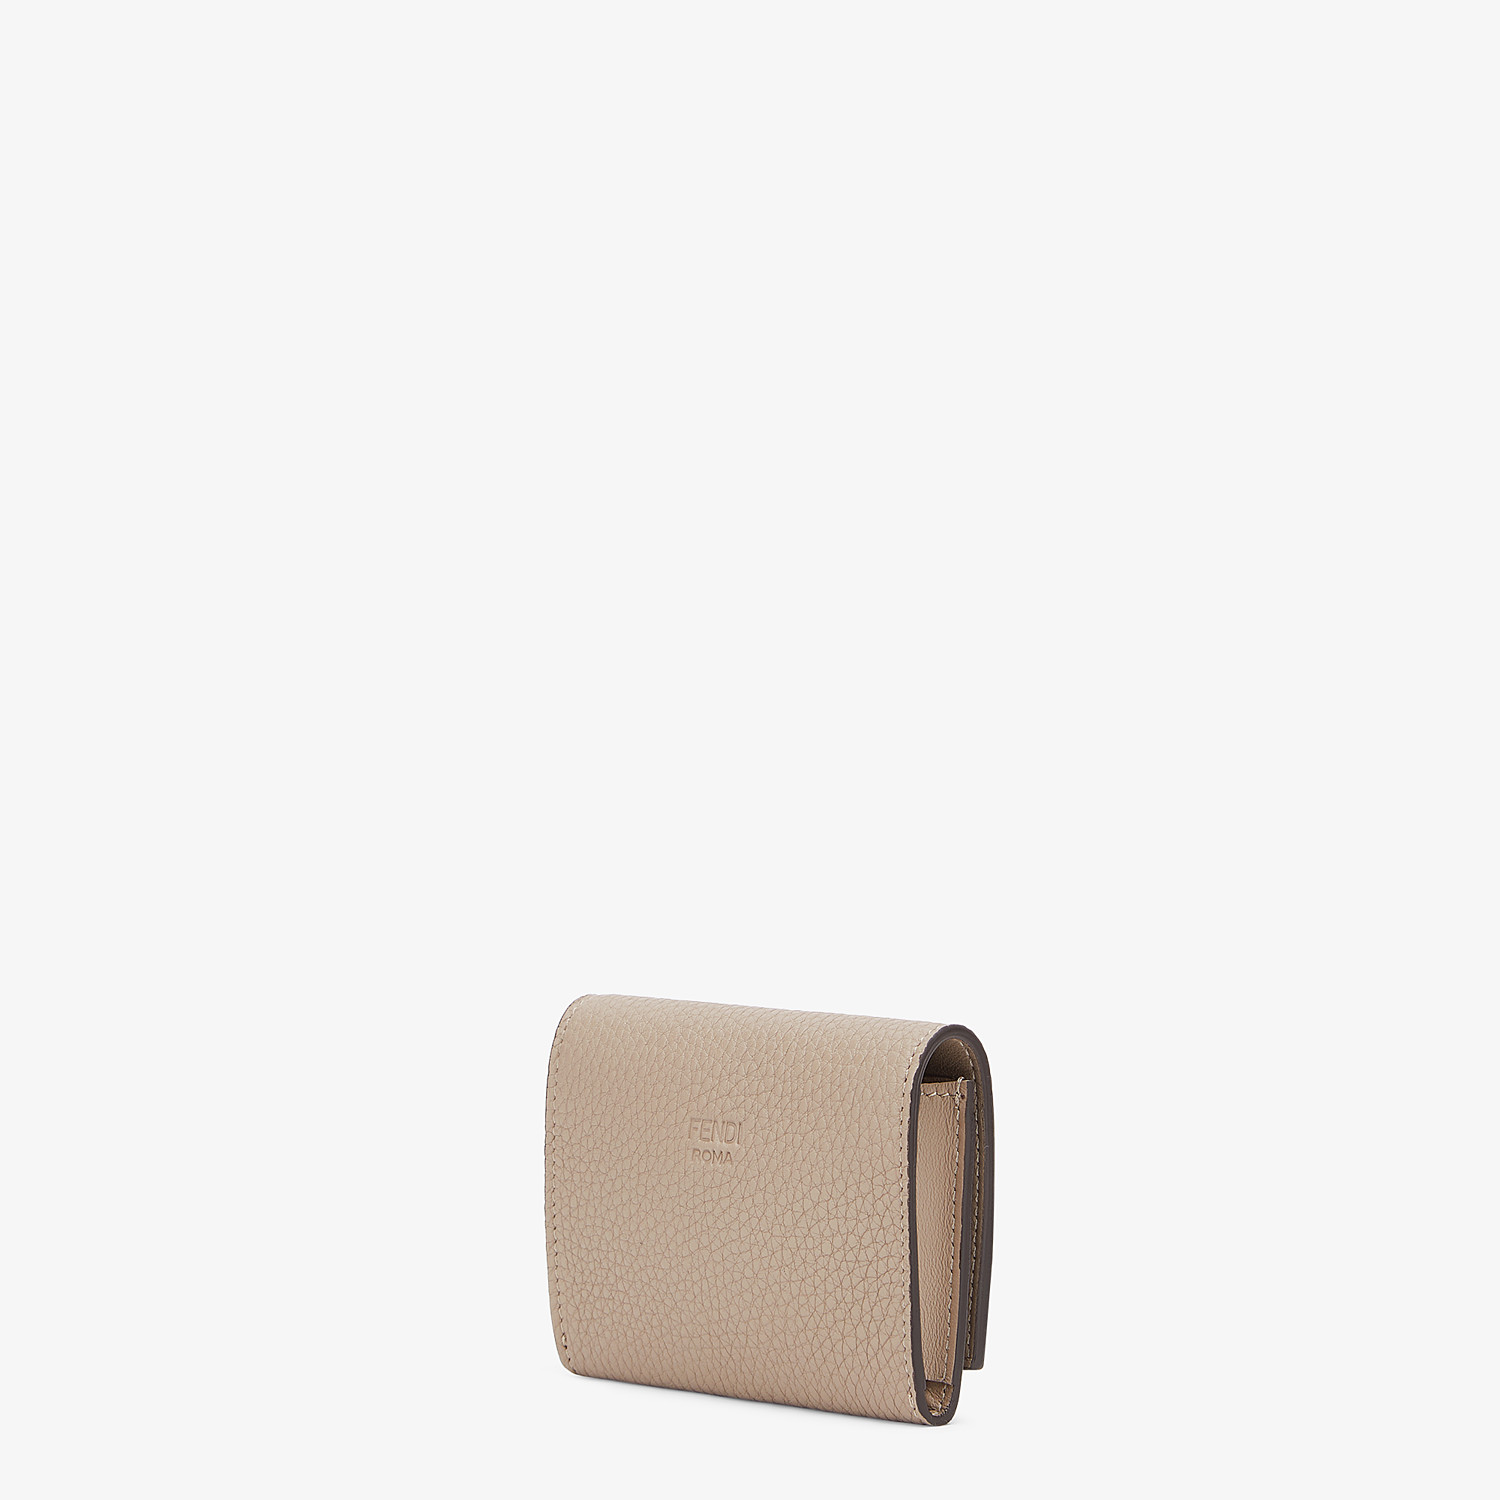 FENDI BUSINESS CARD HOLDER - Leather business card holder - view 2 detail